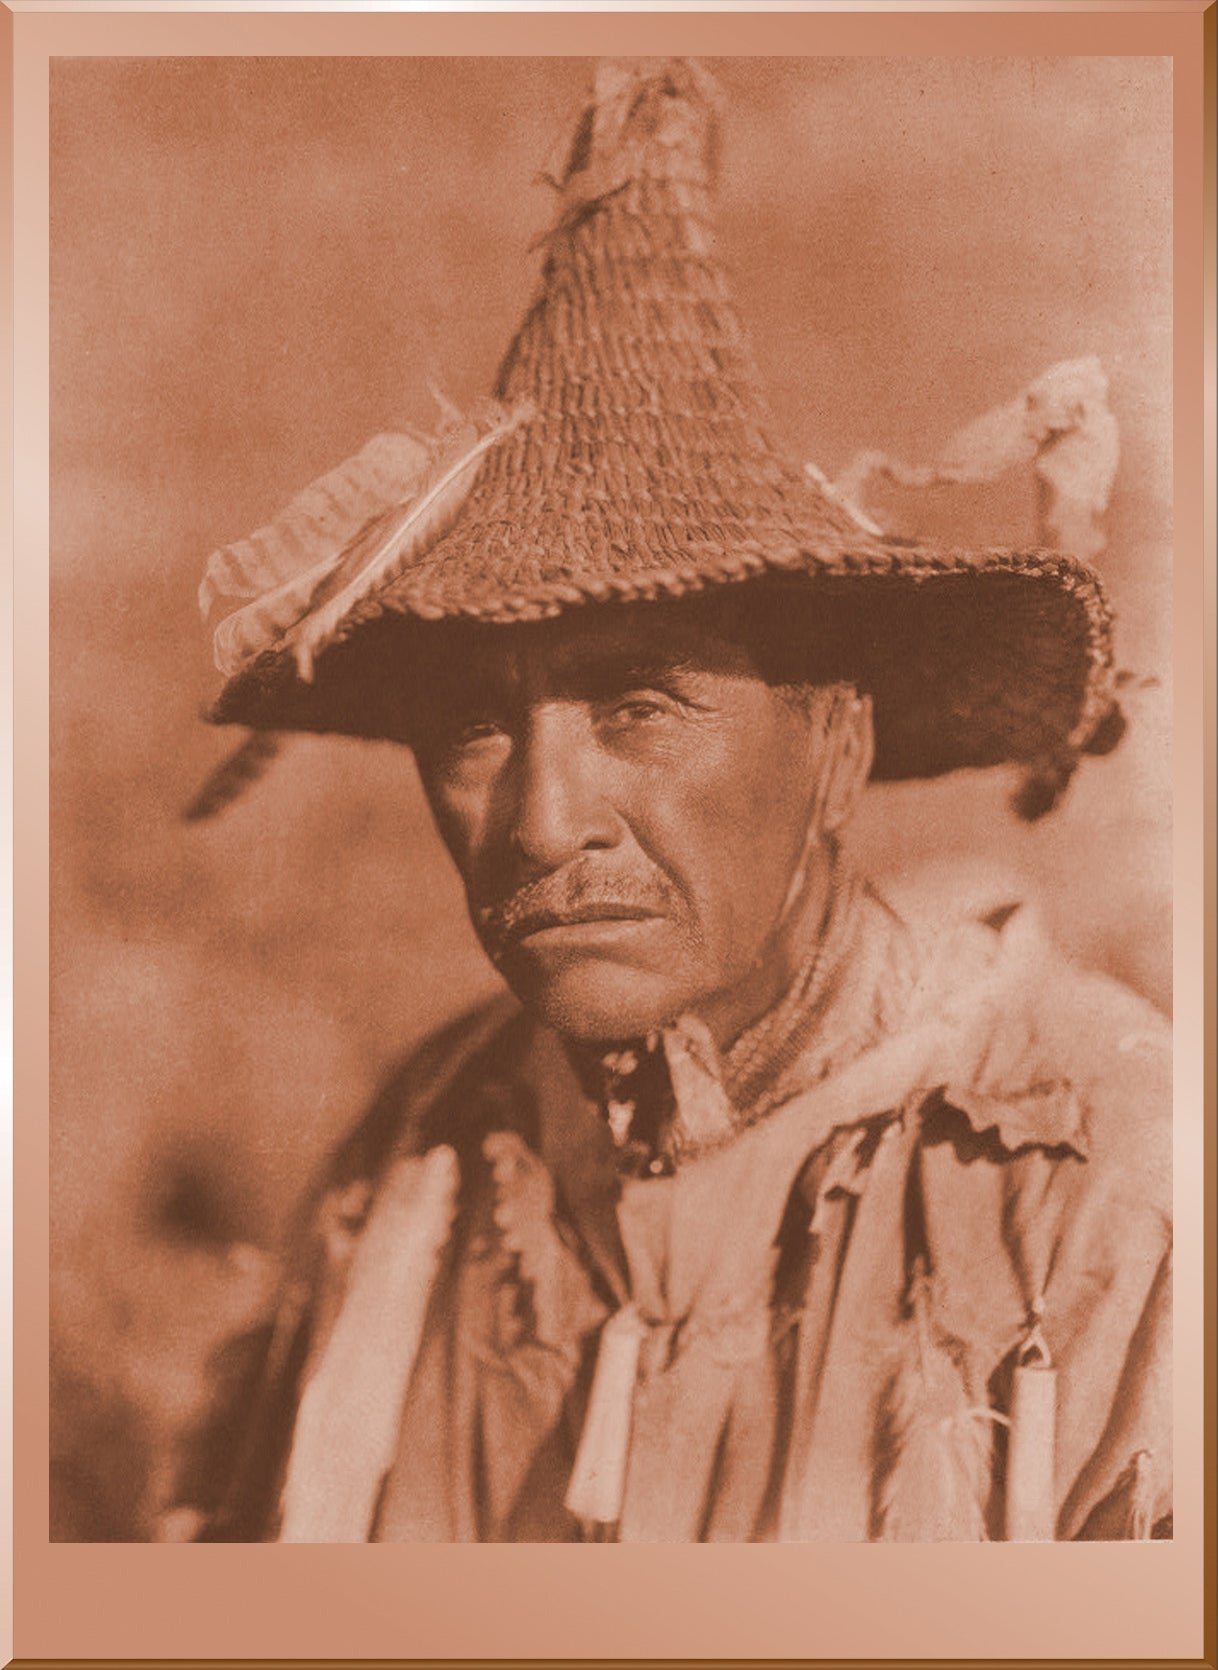 Klamath Warrior's Head Dress